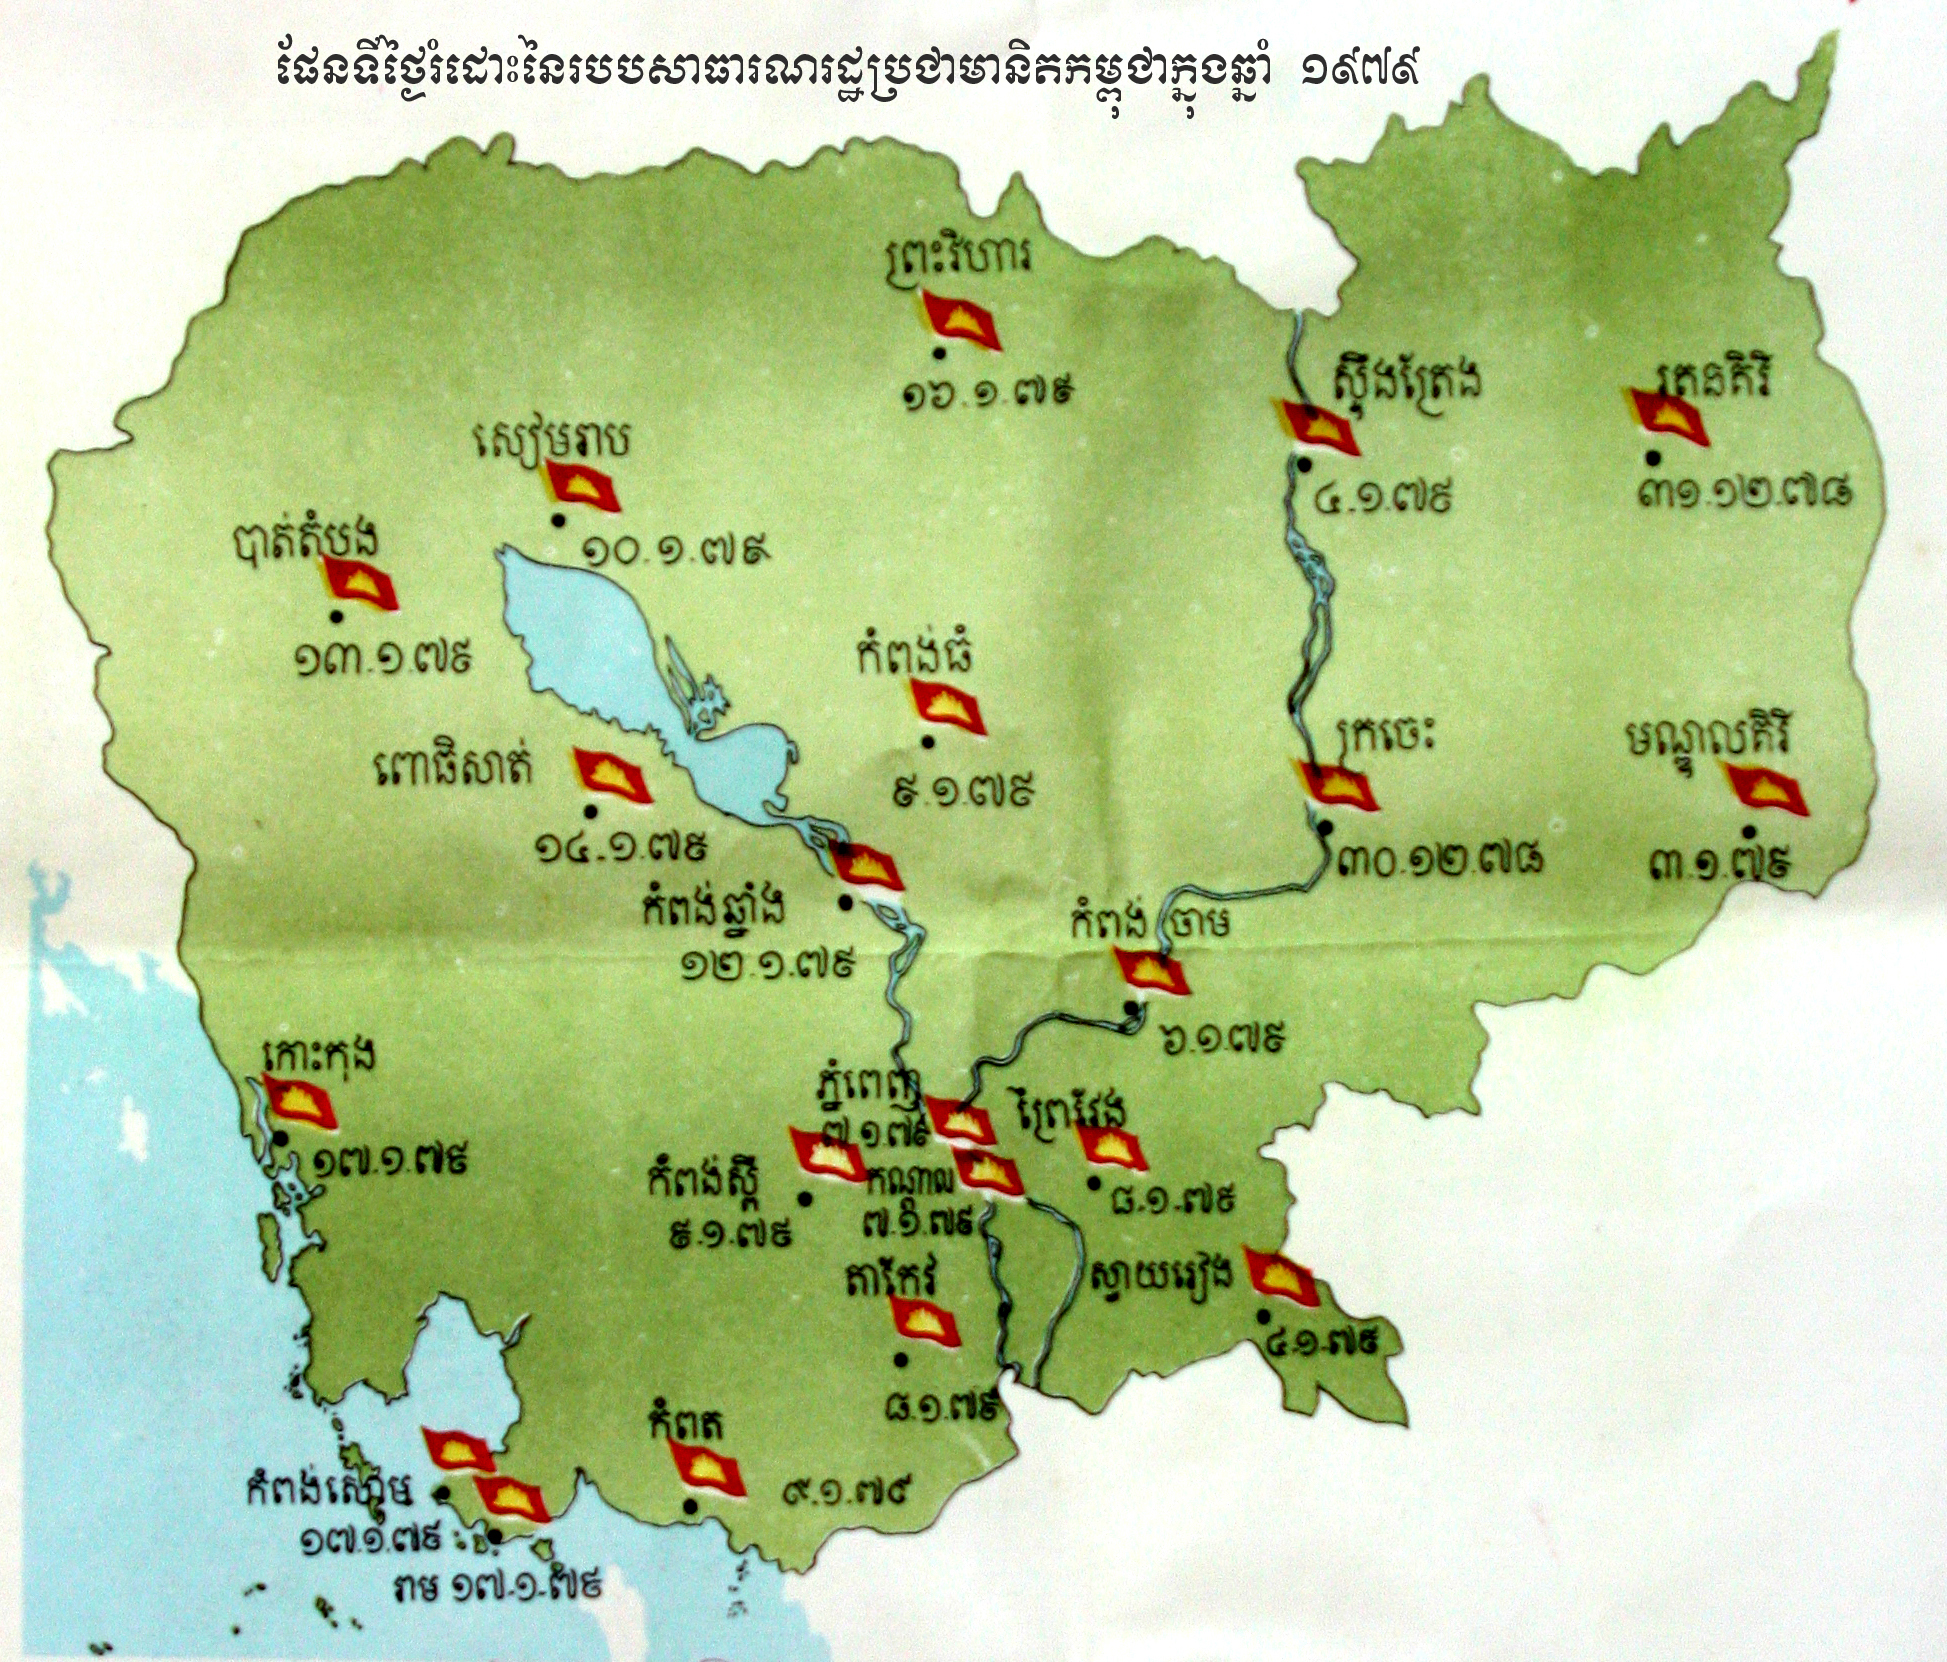 PRK-Liberation-Map-in-Khmer